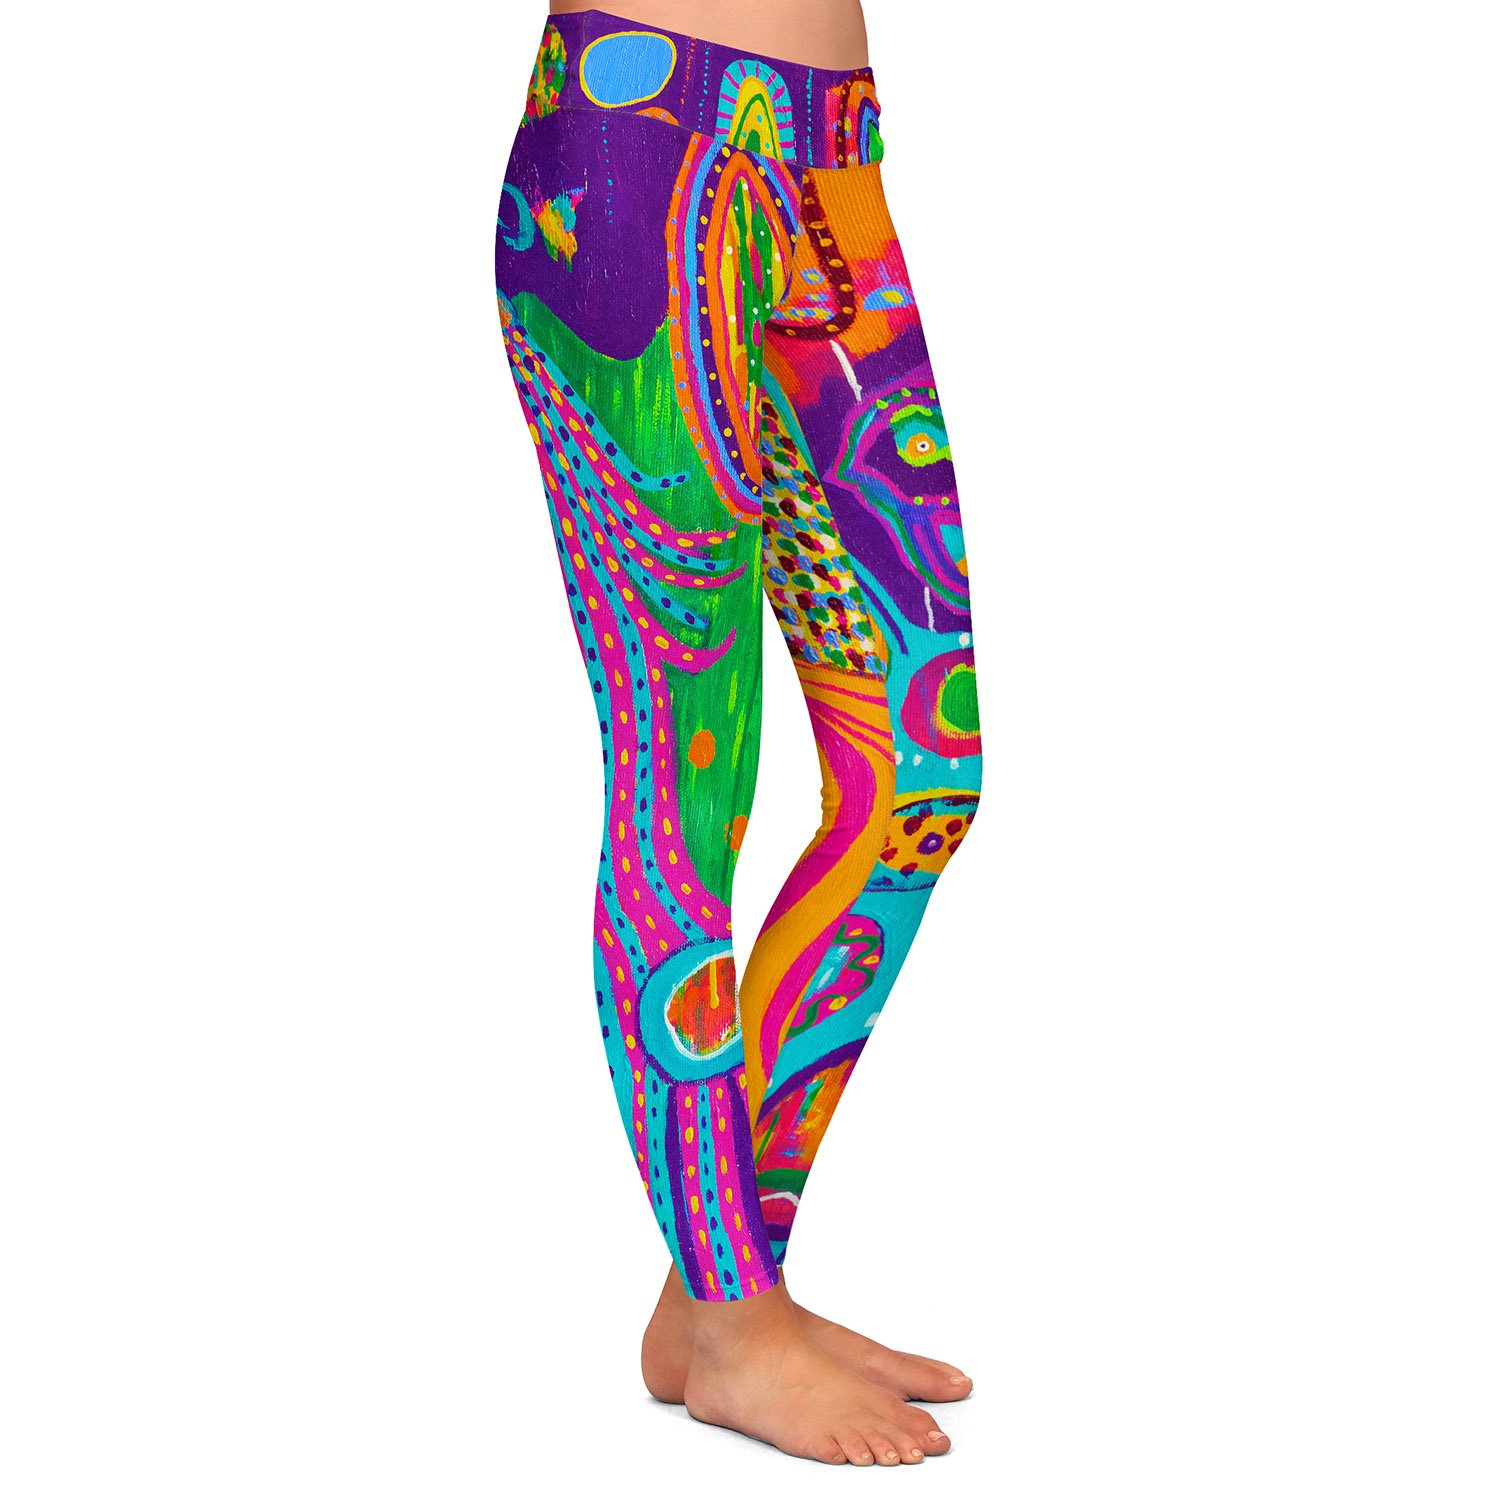 Athletic Yoga Leggings from DiaNoche by Michele Fauss Creatures of Lollipop Land